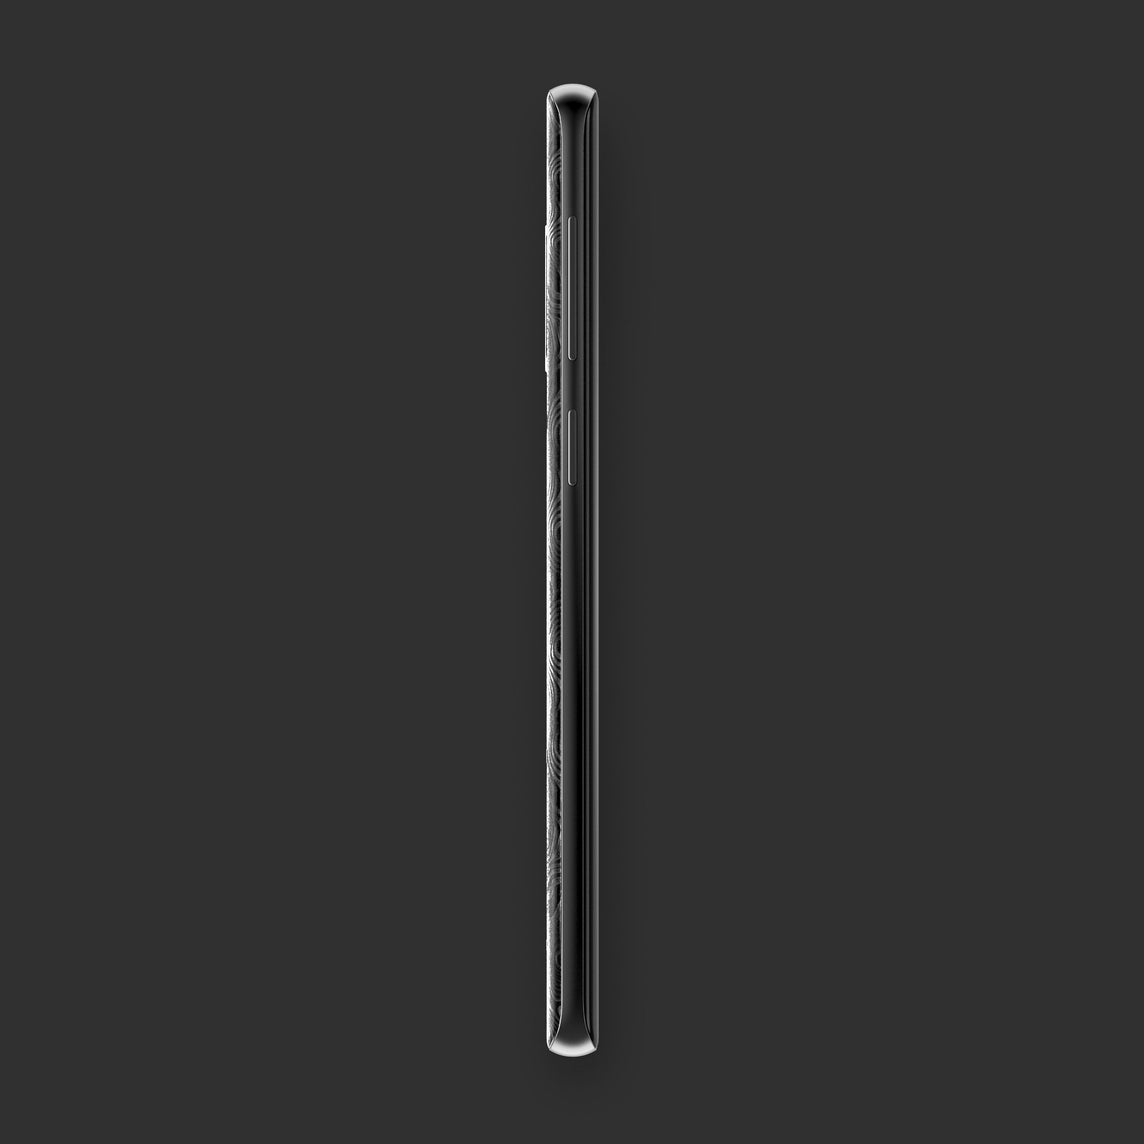 Hadoro Samsung Galaxy S9+ Black Alligator | Carbon